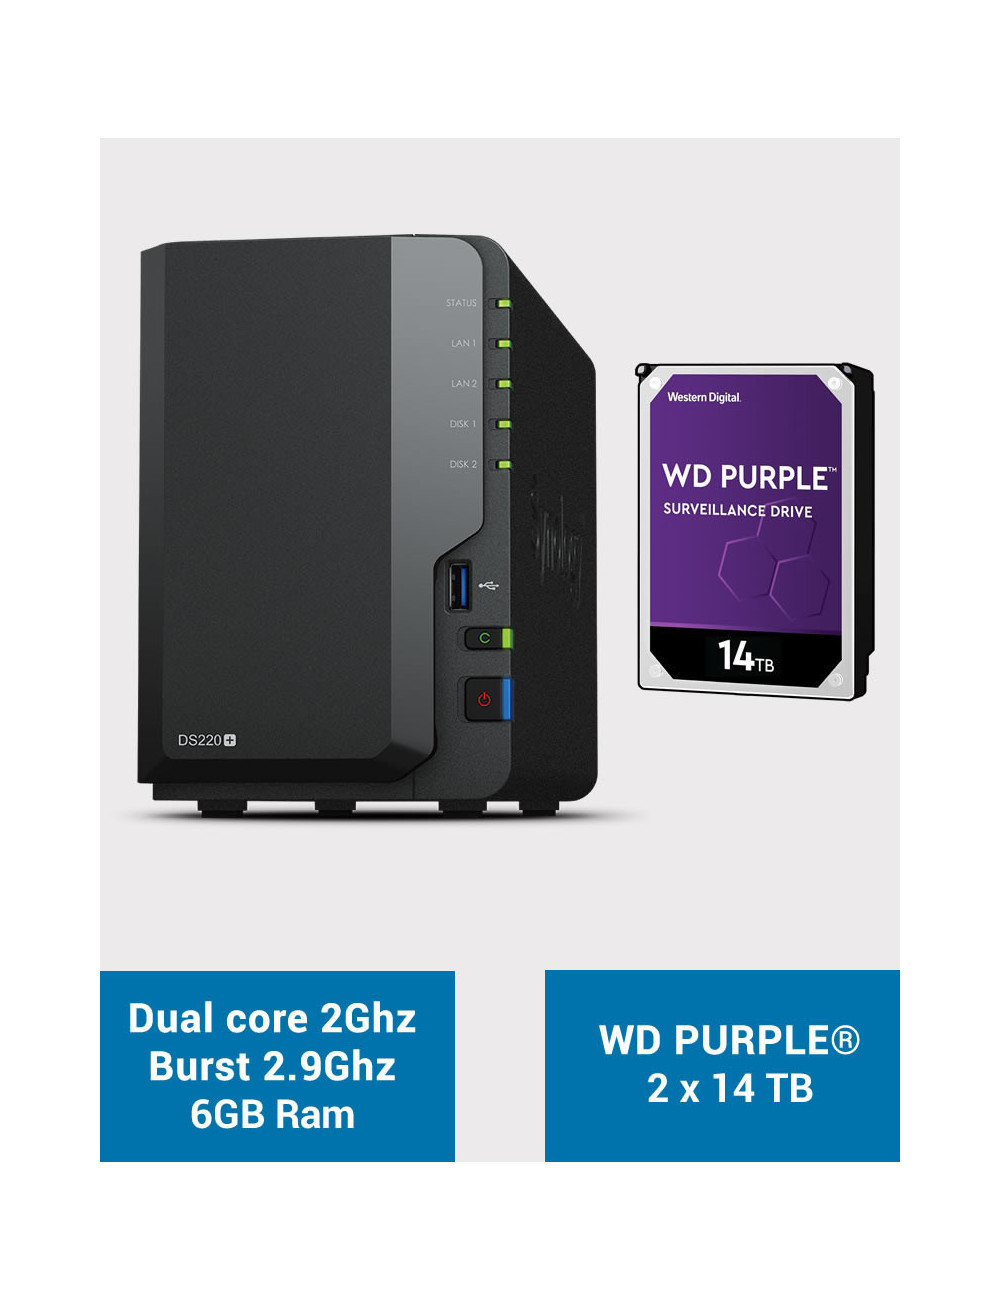 Synology DS220+ 6Go Serveur NAS WD PURPLE 28To (2x14To)